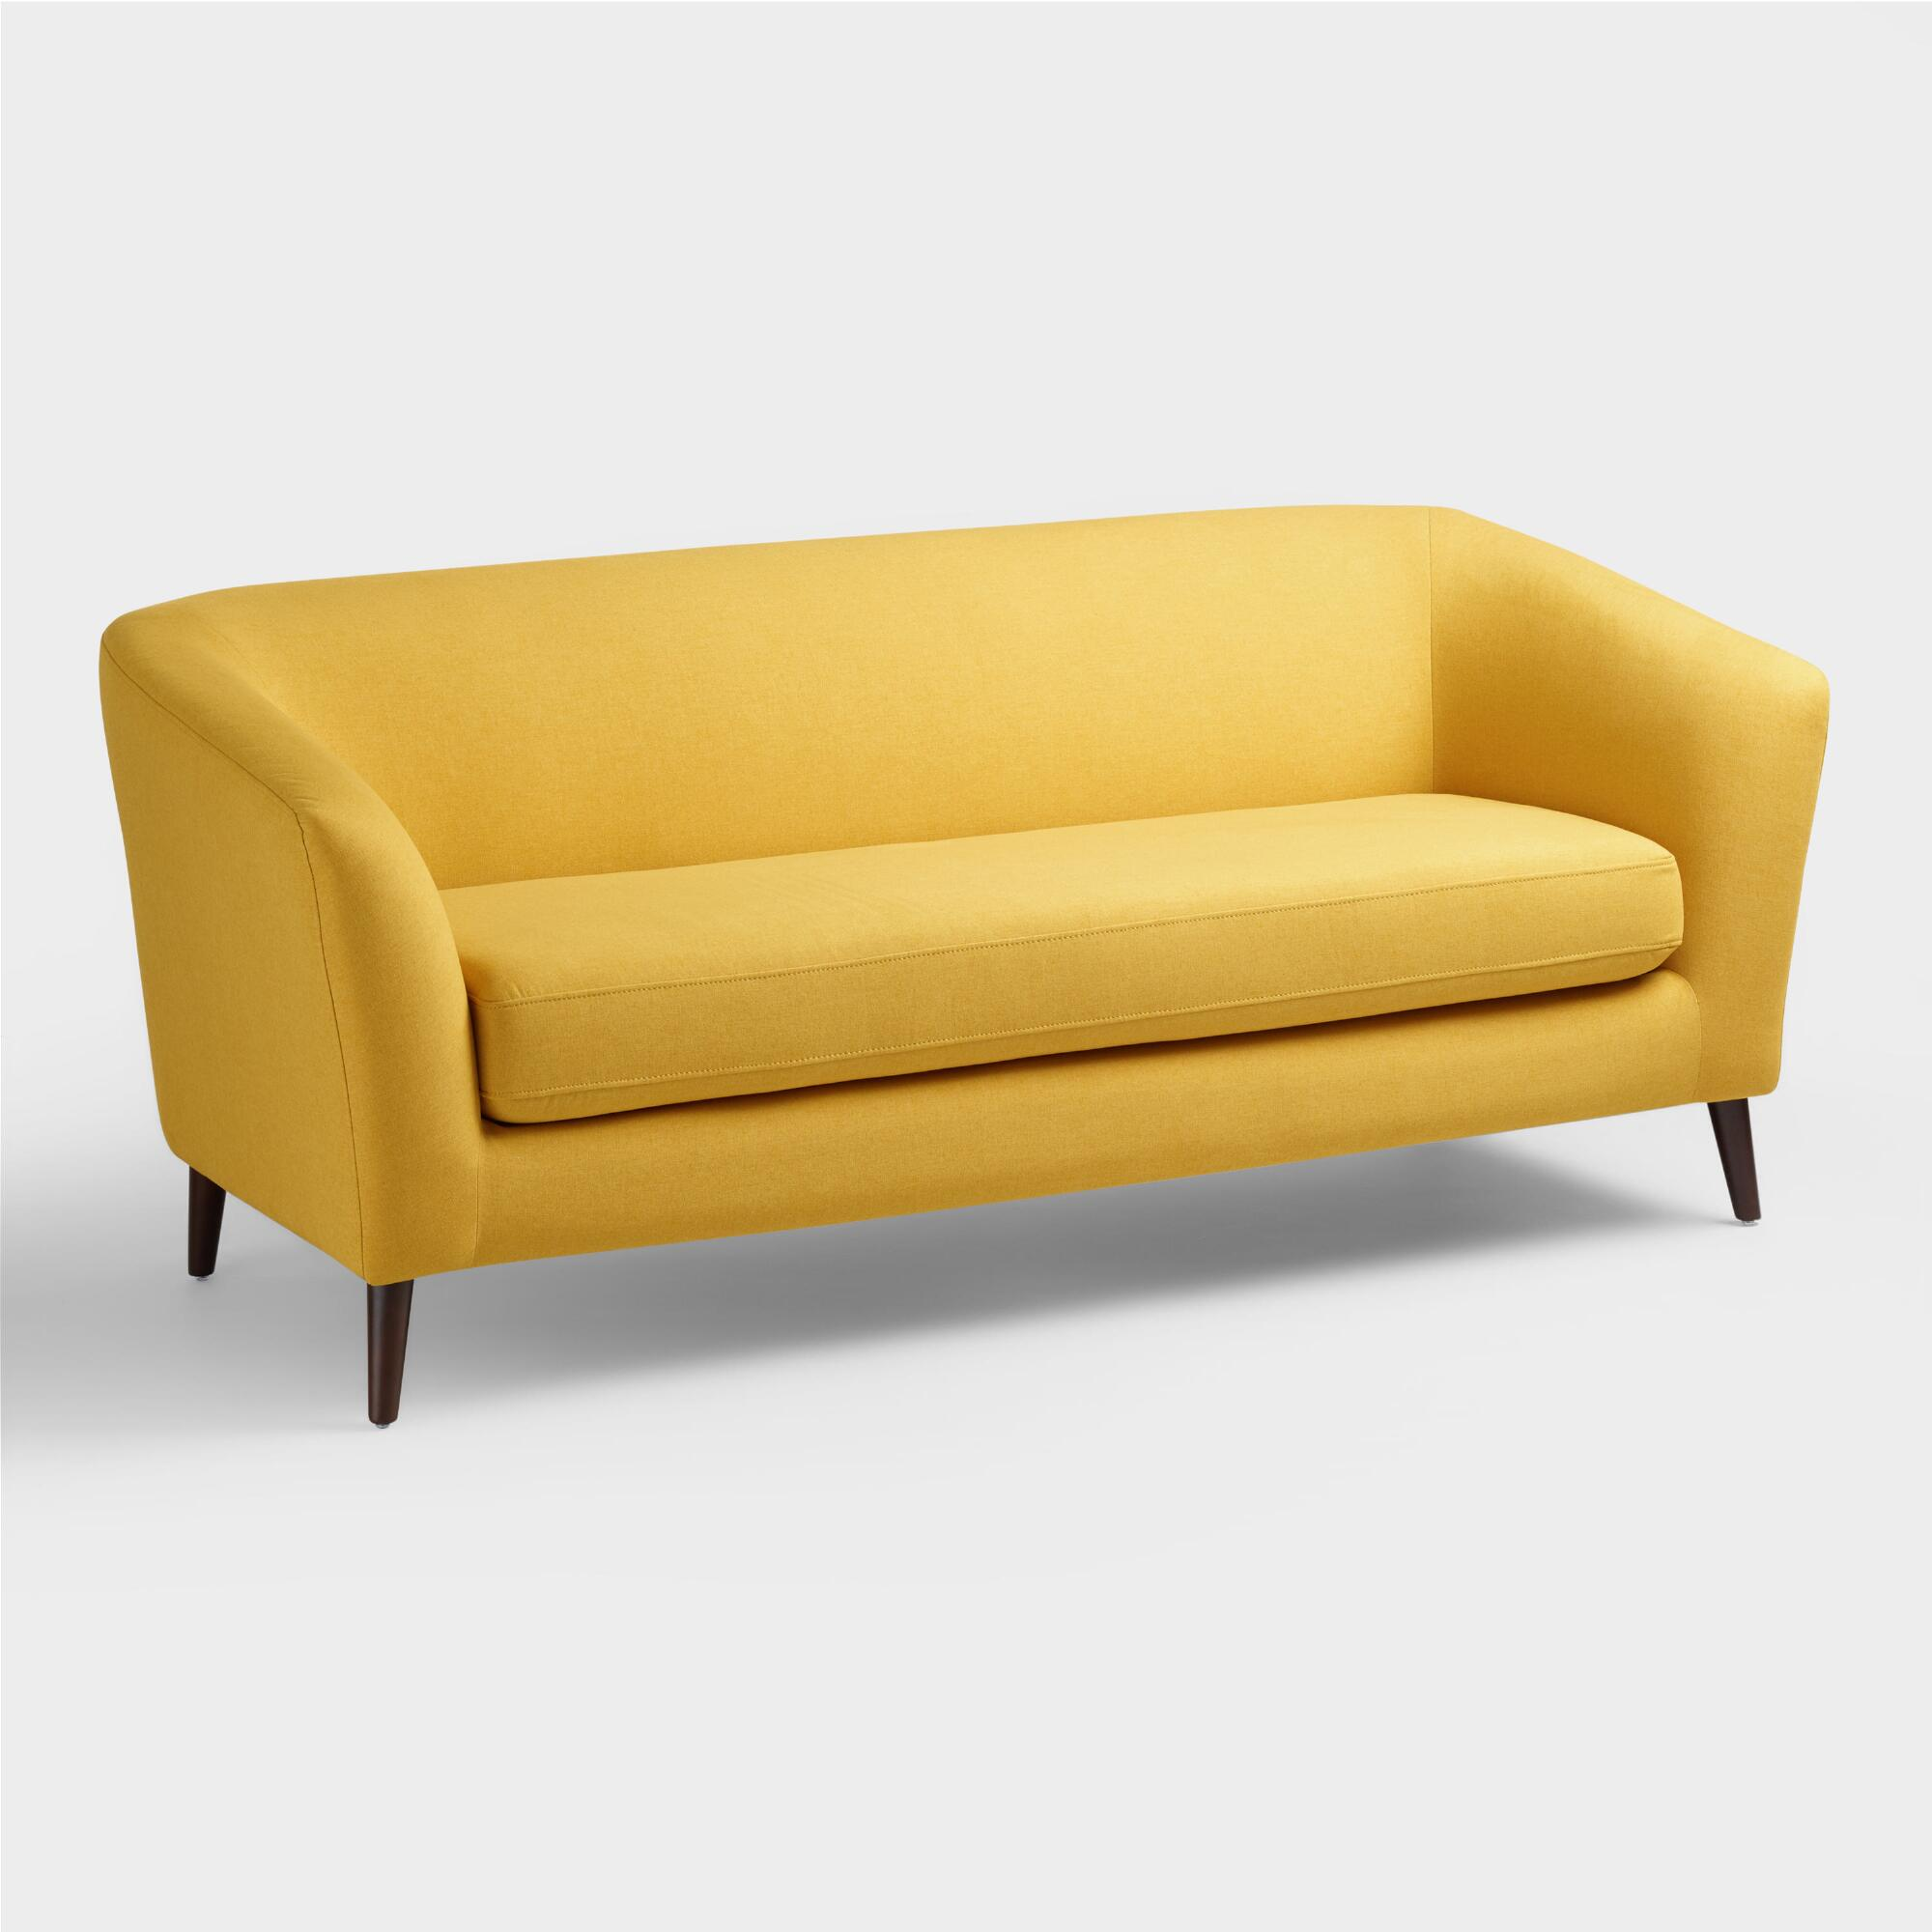 Yellow sofa bed yellow sofa bed bonners furniture thesofa for Couch and loveseat